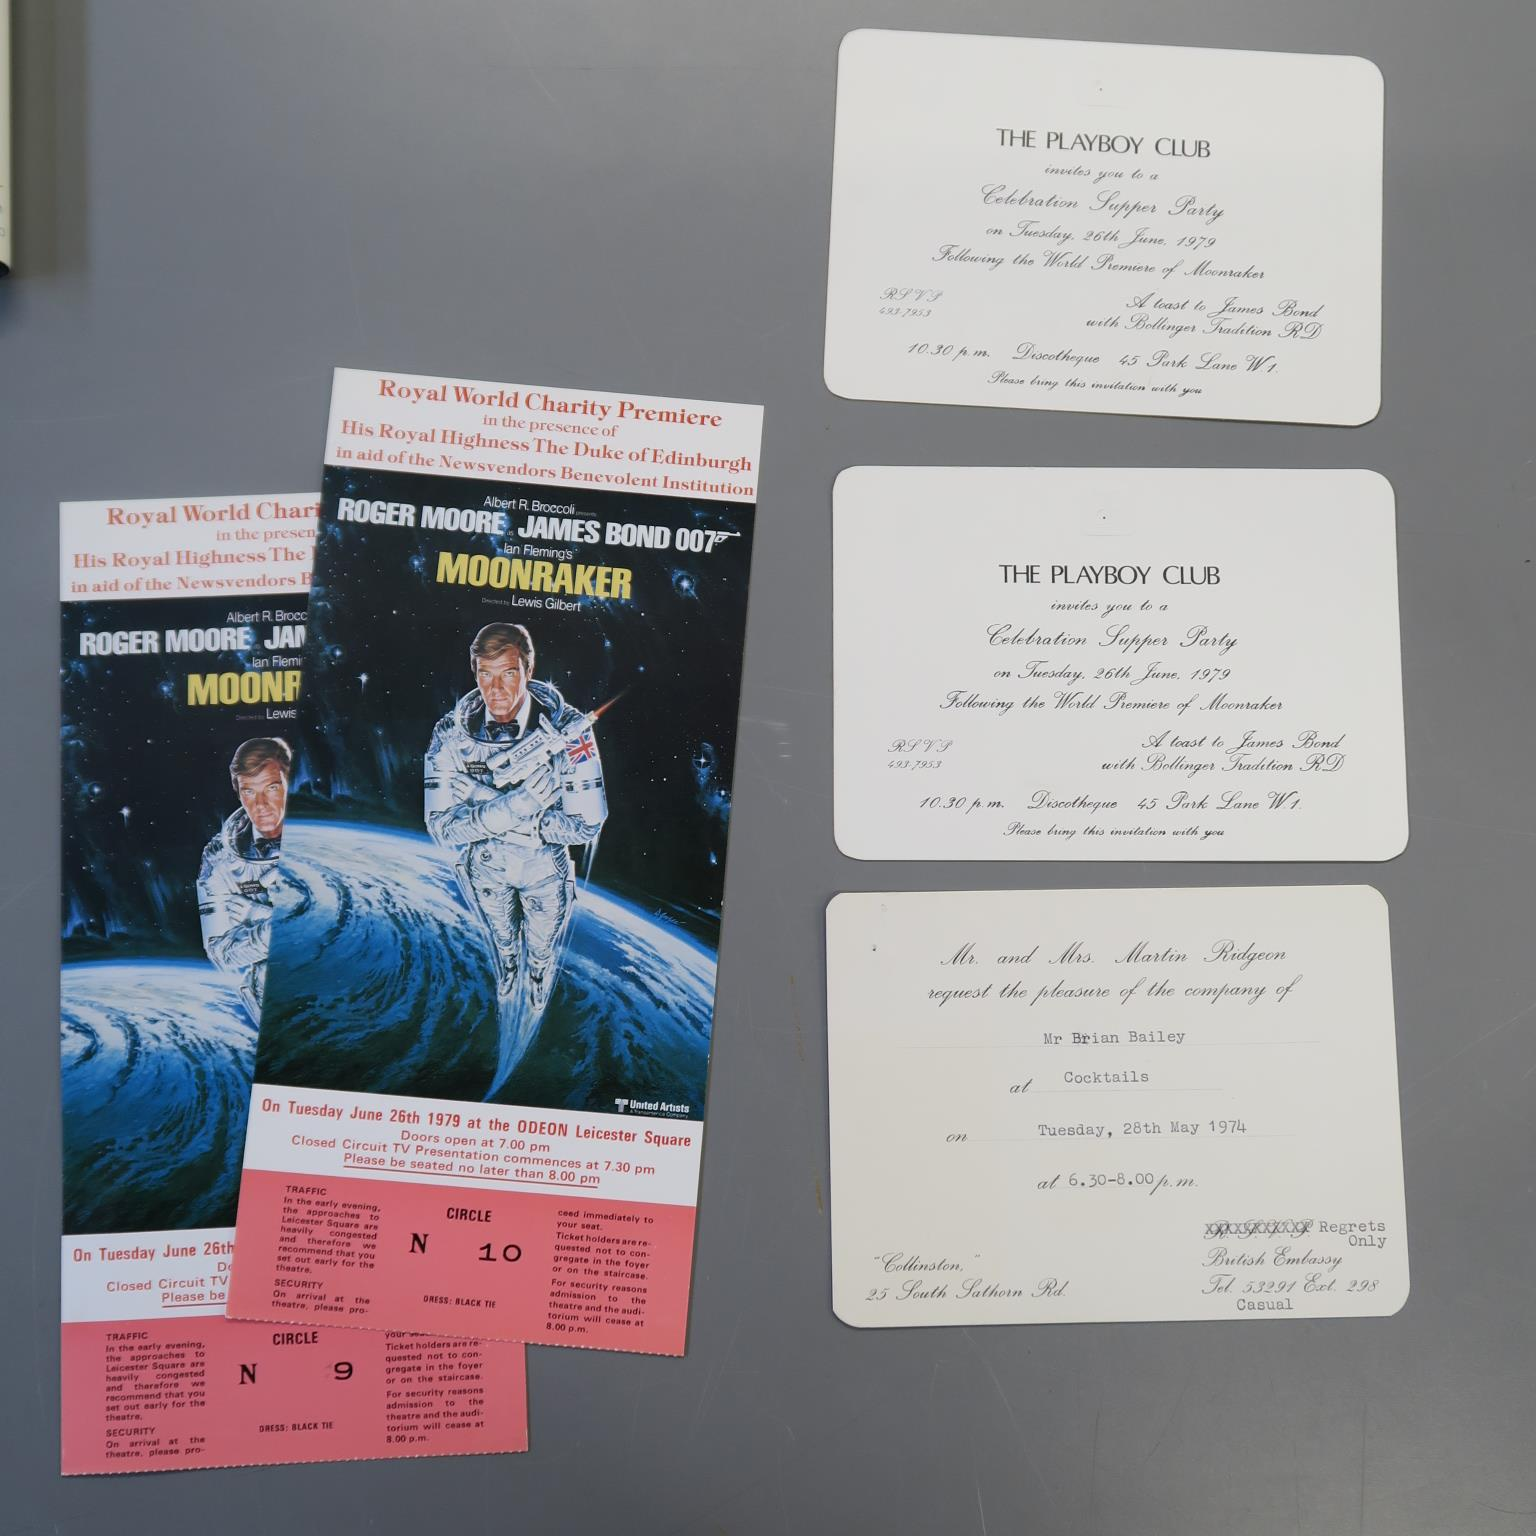 Lot 20 - JAMES BOND 007 : Moonraker 1979 two invitations for the Playboy club celebration supper party on